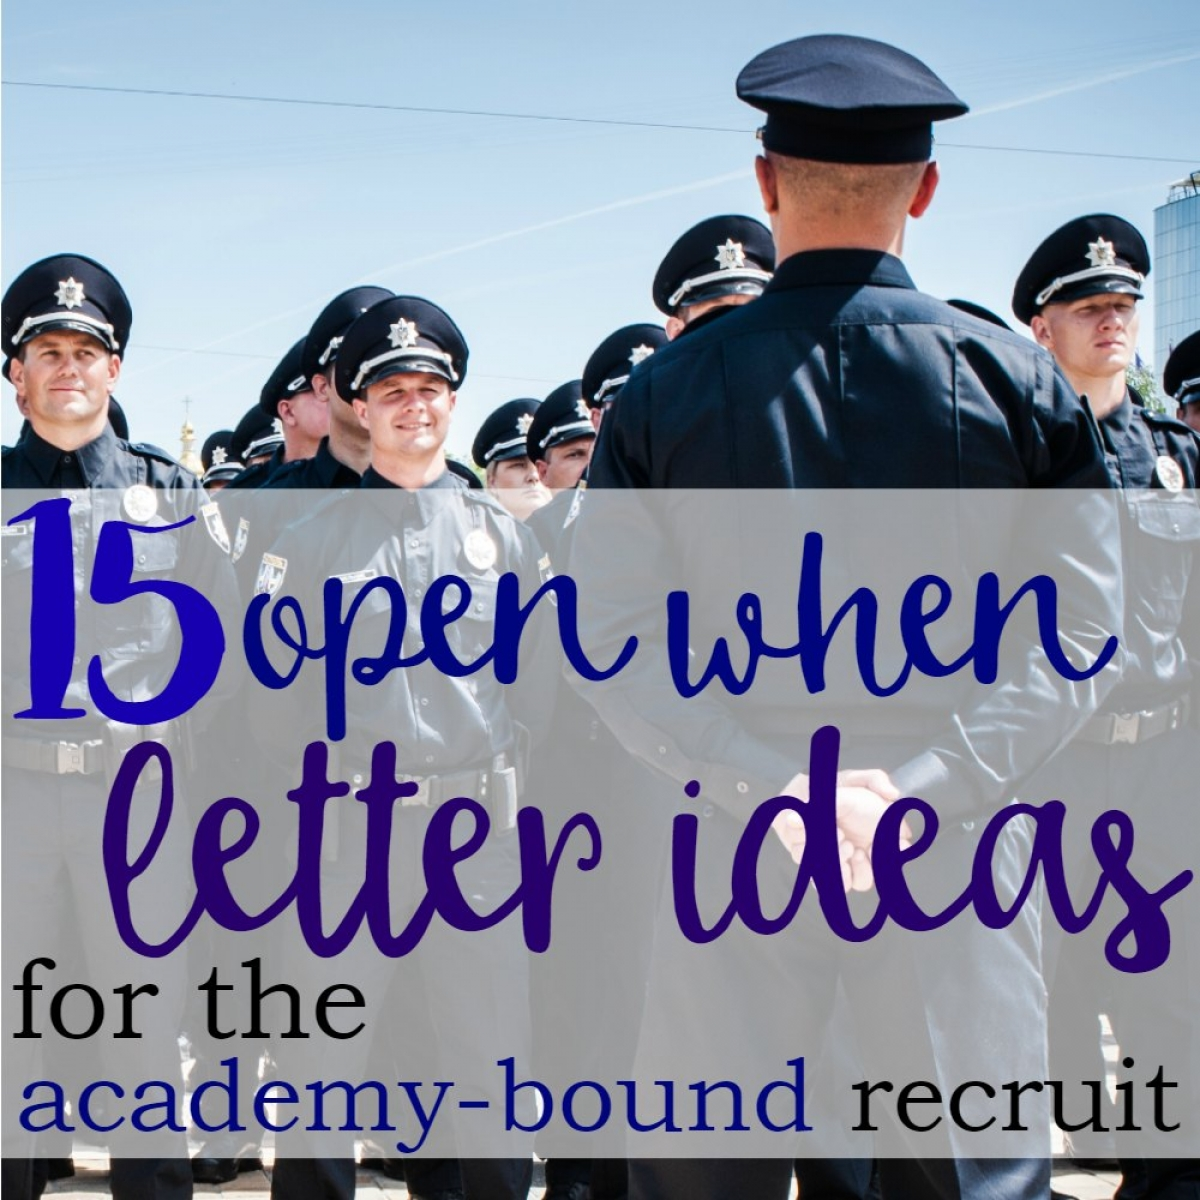 The Academy: 15 Open When Letter Ideas For The Academy-Bound Recruit